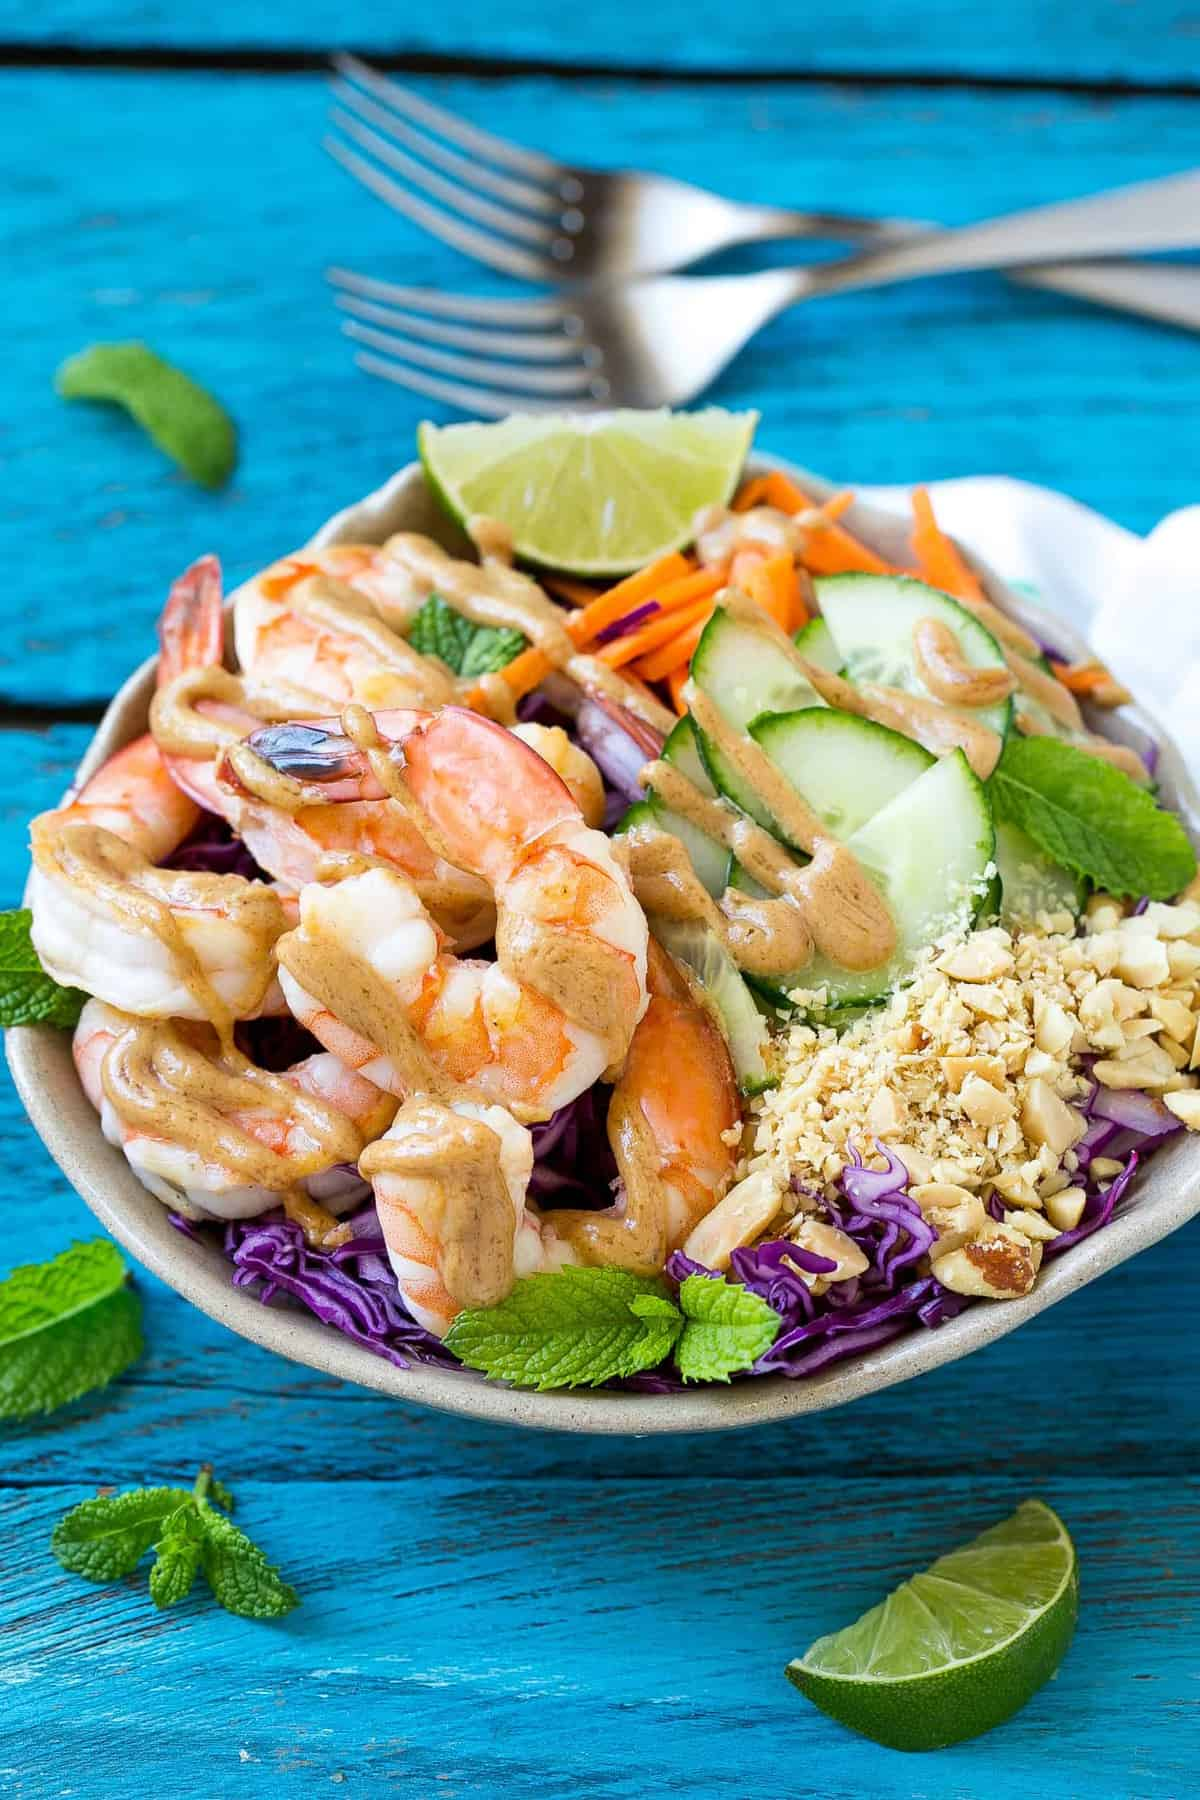 Shrimp Salad with Peanut Dressing in a bowl